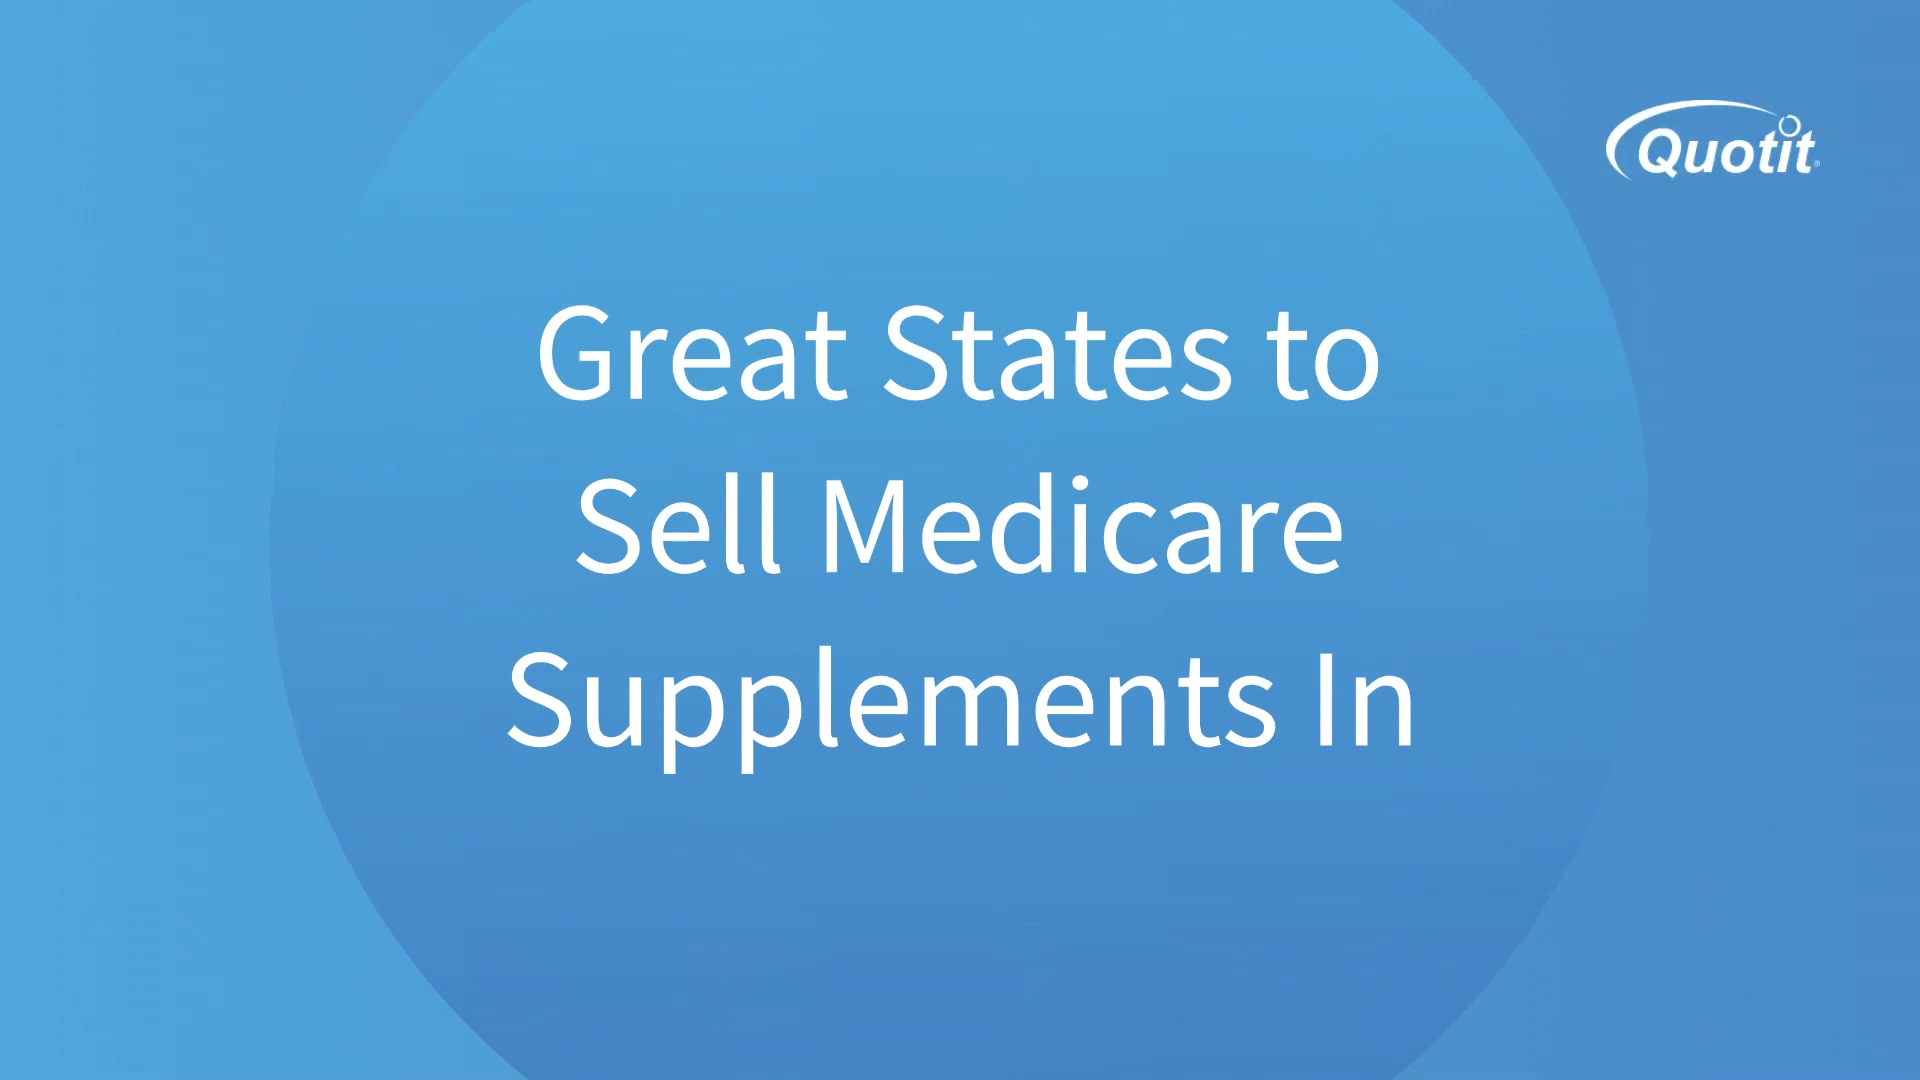 Quotit_-_Best_States_to_Sell_Medicare_Su (1)